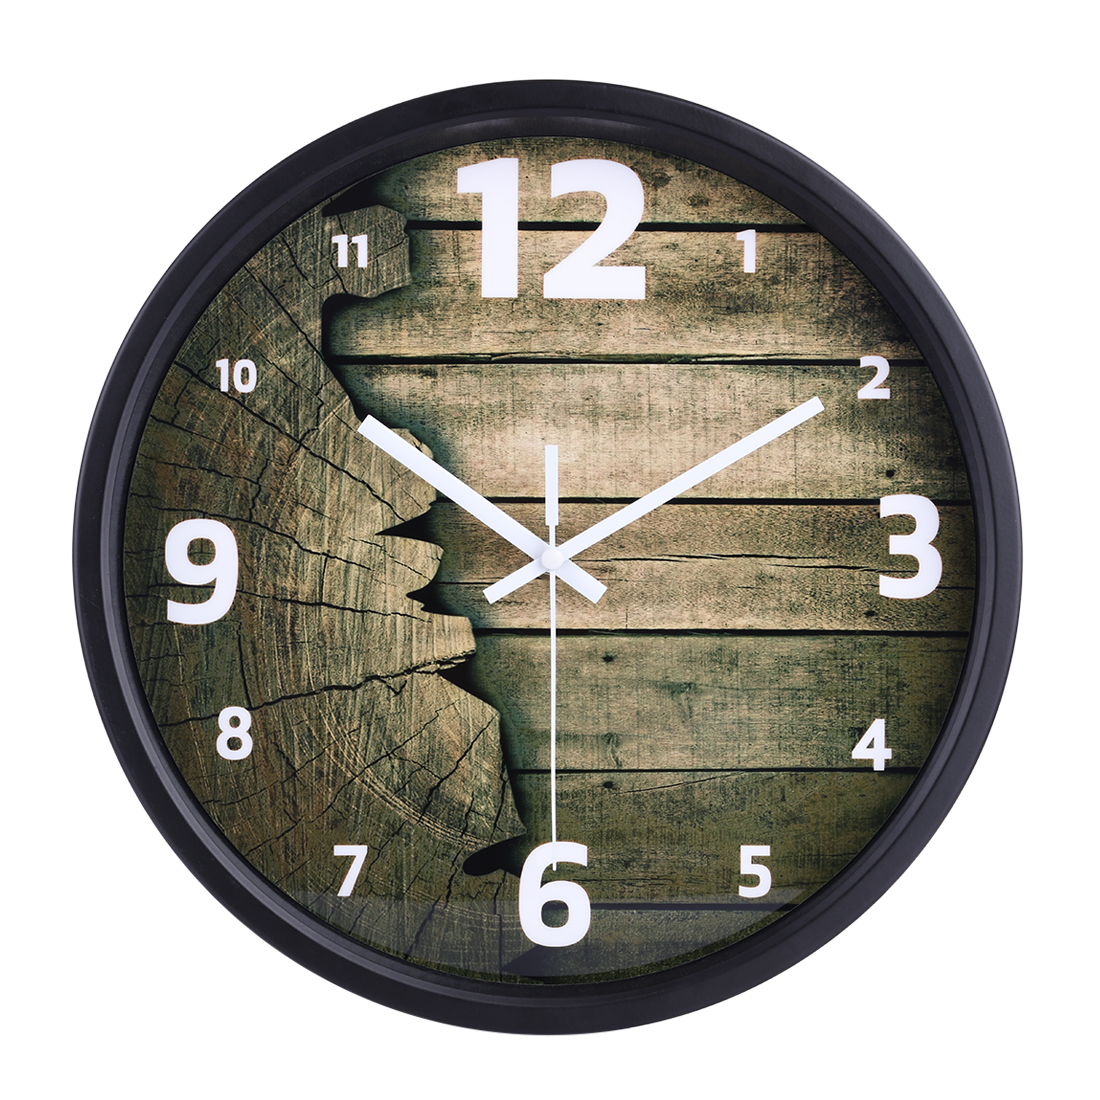 12 Inch Imitation Wood Grain Silent Wall Clock With Black Frame For Home Decor Beautiful Wall Hanging Clocks Timer Drop Shipping